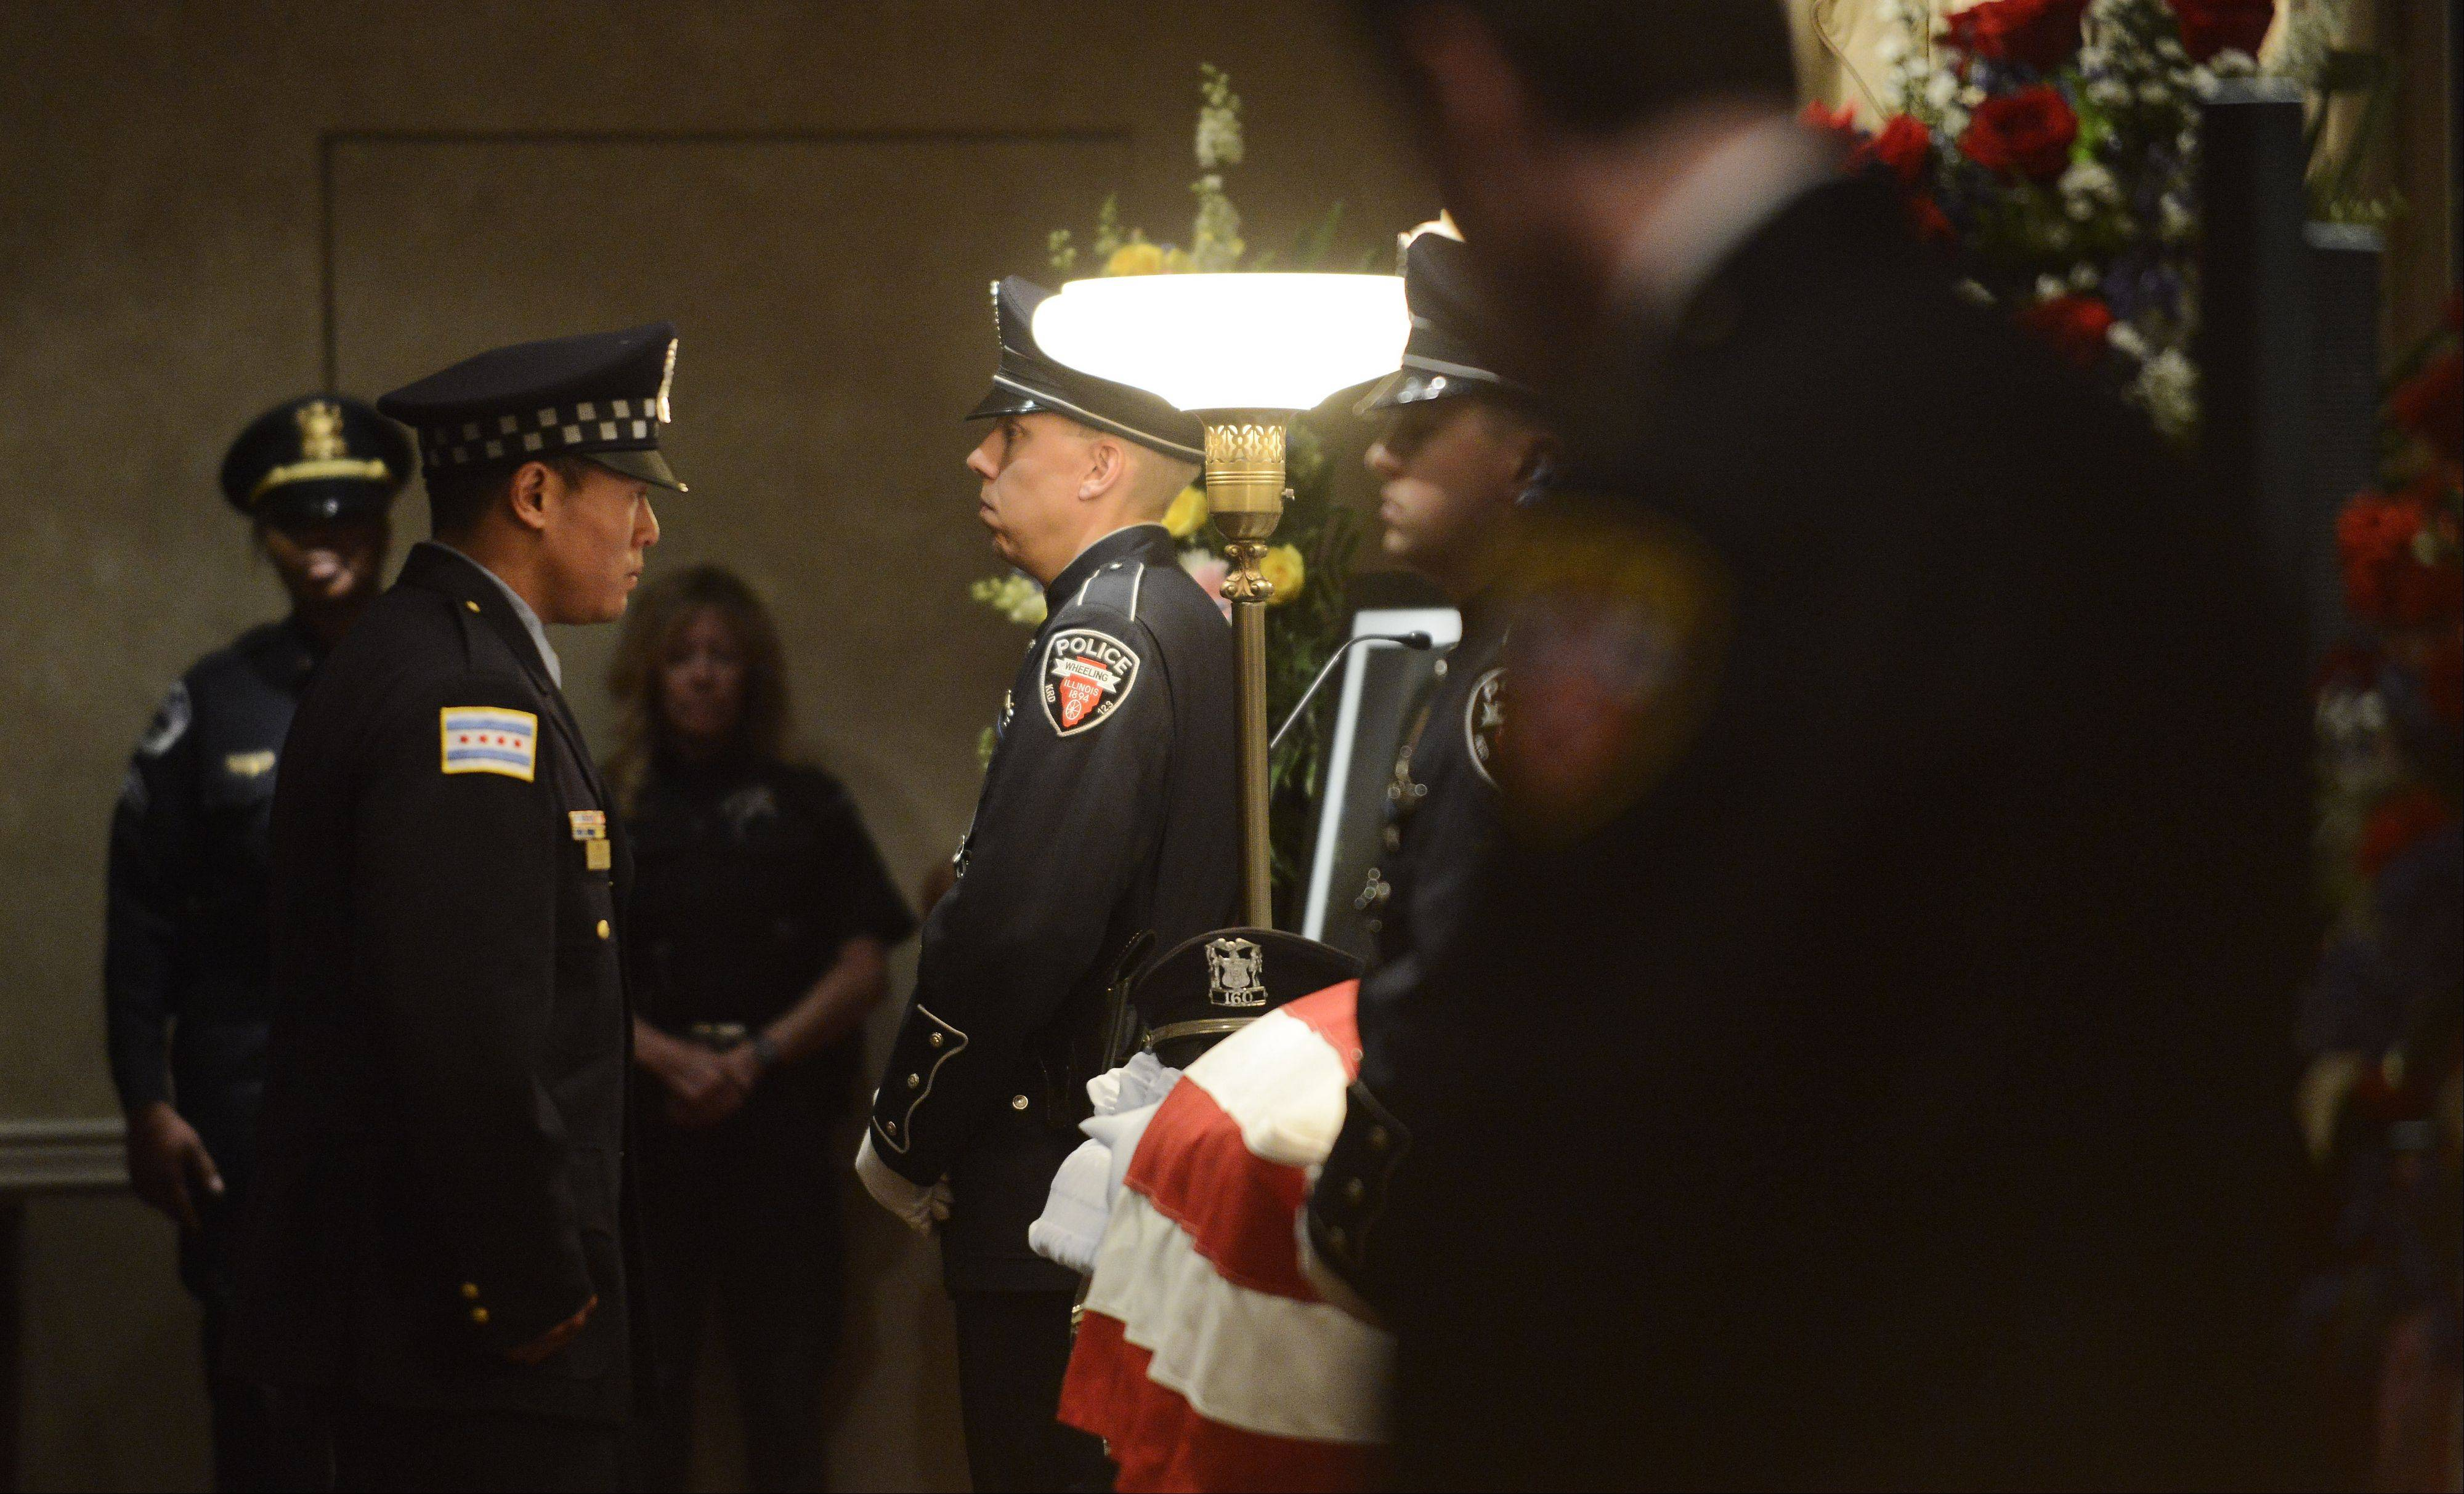 Officers from police departments throughout the greater Chicago area pay their respects during the wake for Wheeling police officer Shamekia Goodwin-Badger at Kolssak Funeral Home in Wheeling Wednesday.